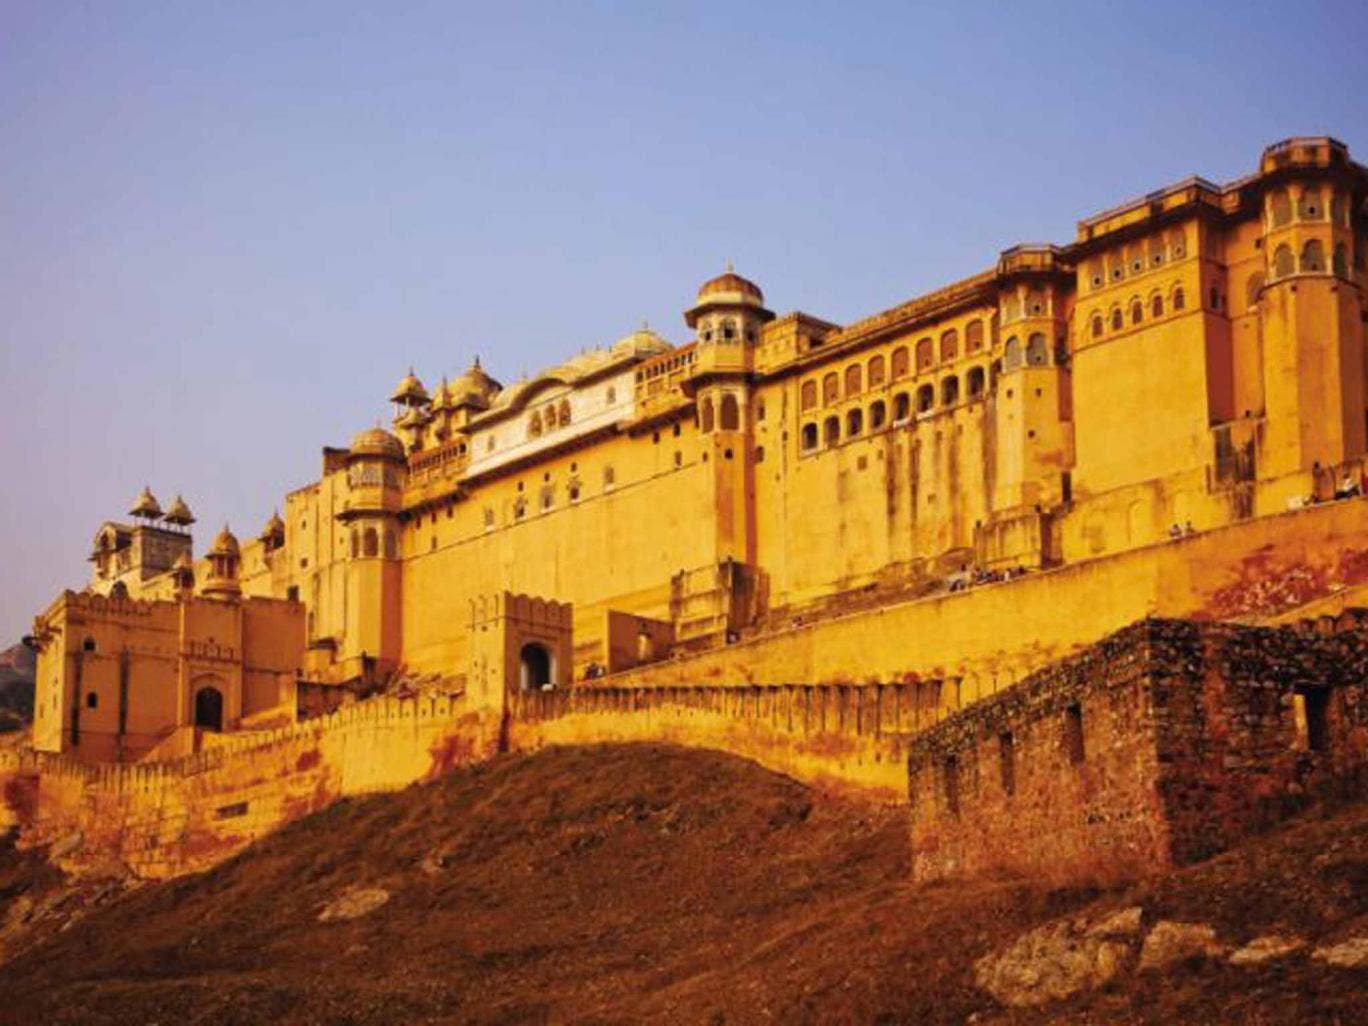 Mellow yellow: the Amber Palace in Jaipur